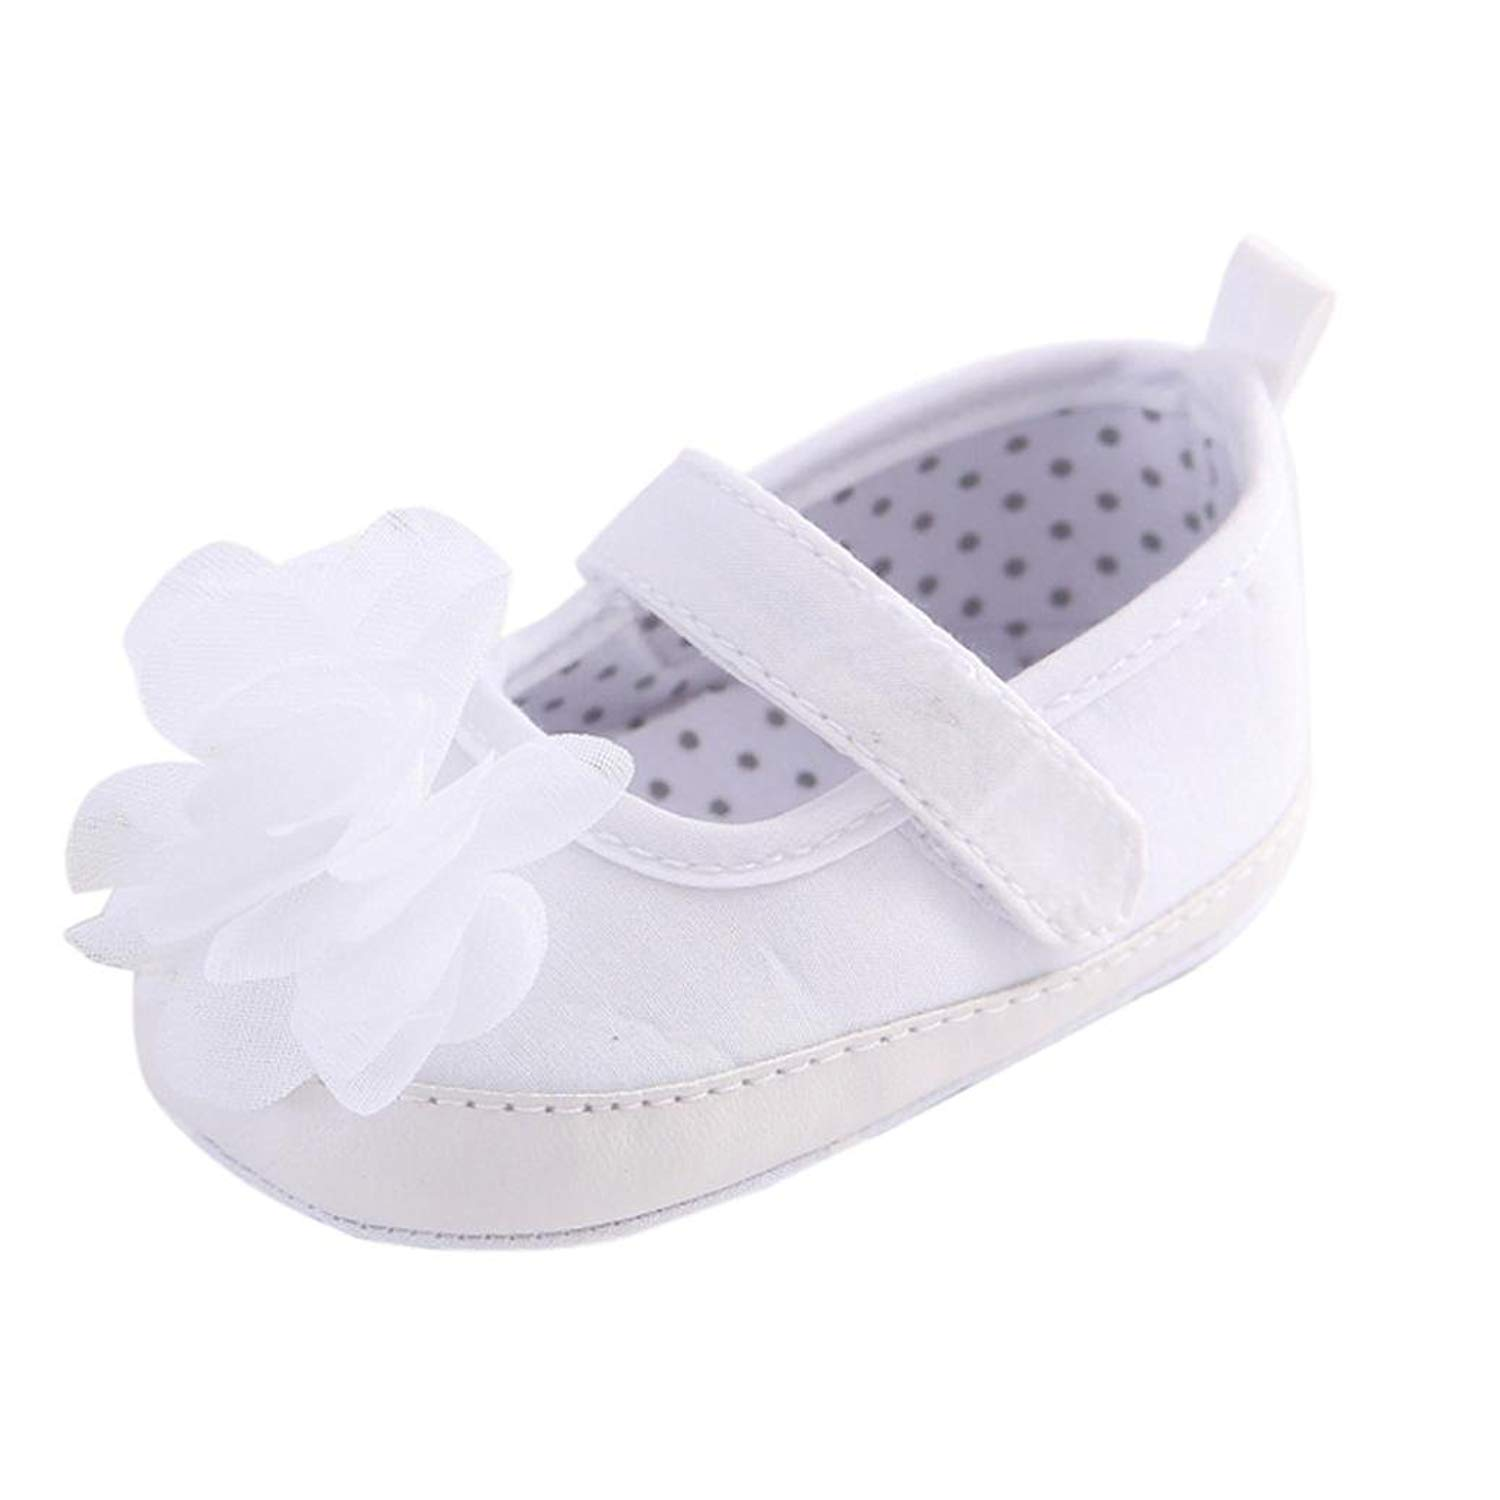 1aa3629fe3405 Get Quotations · WARMSHOP Baby White Shoes Girl Toddler Flower Soft Sole  Anti-Slip Baby Jean Sneakers